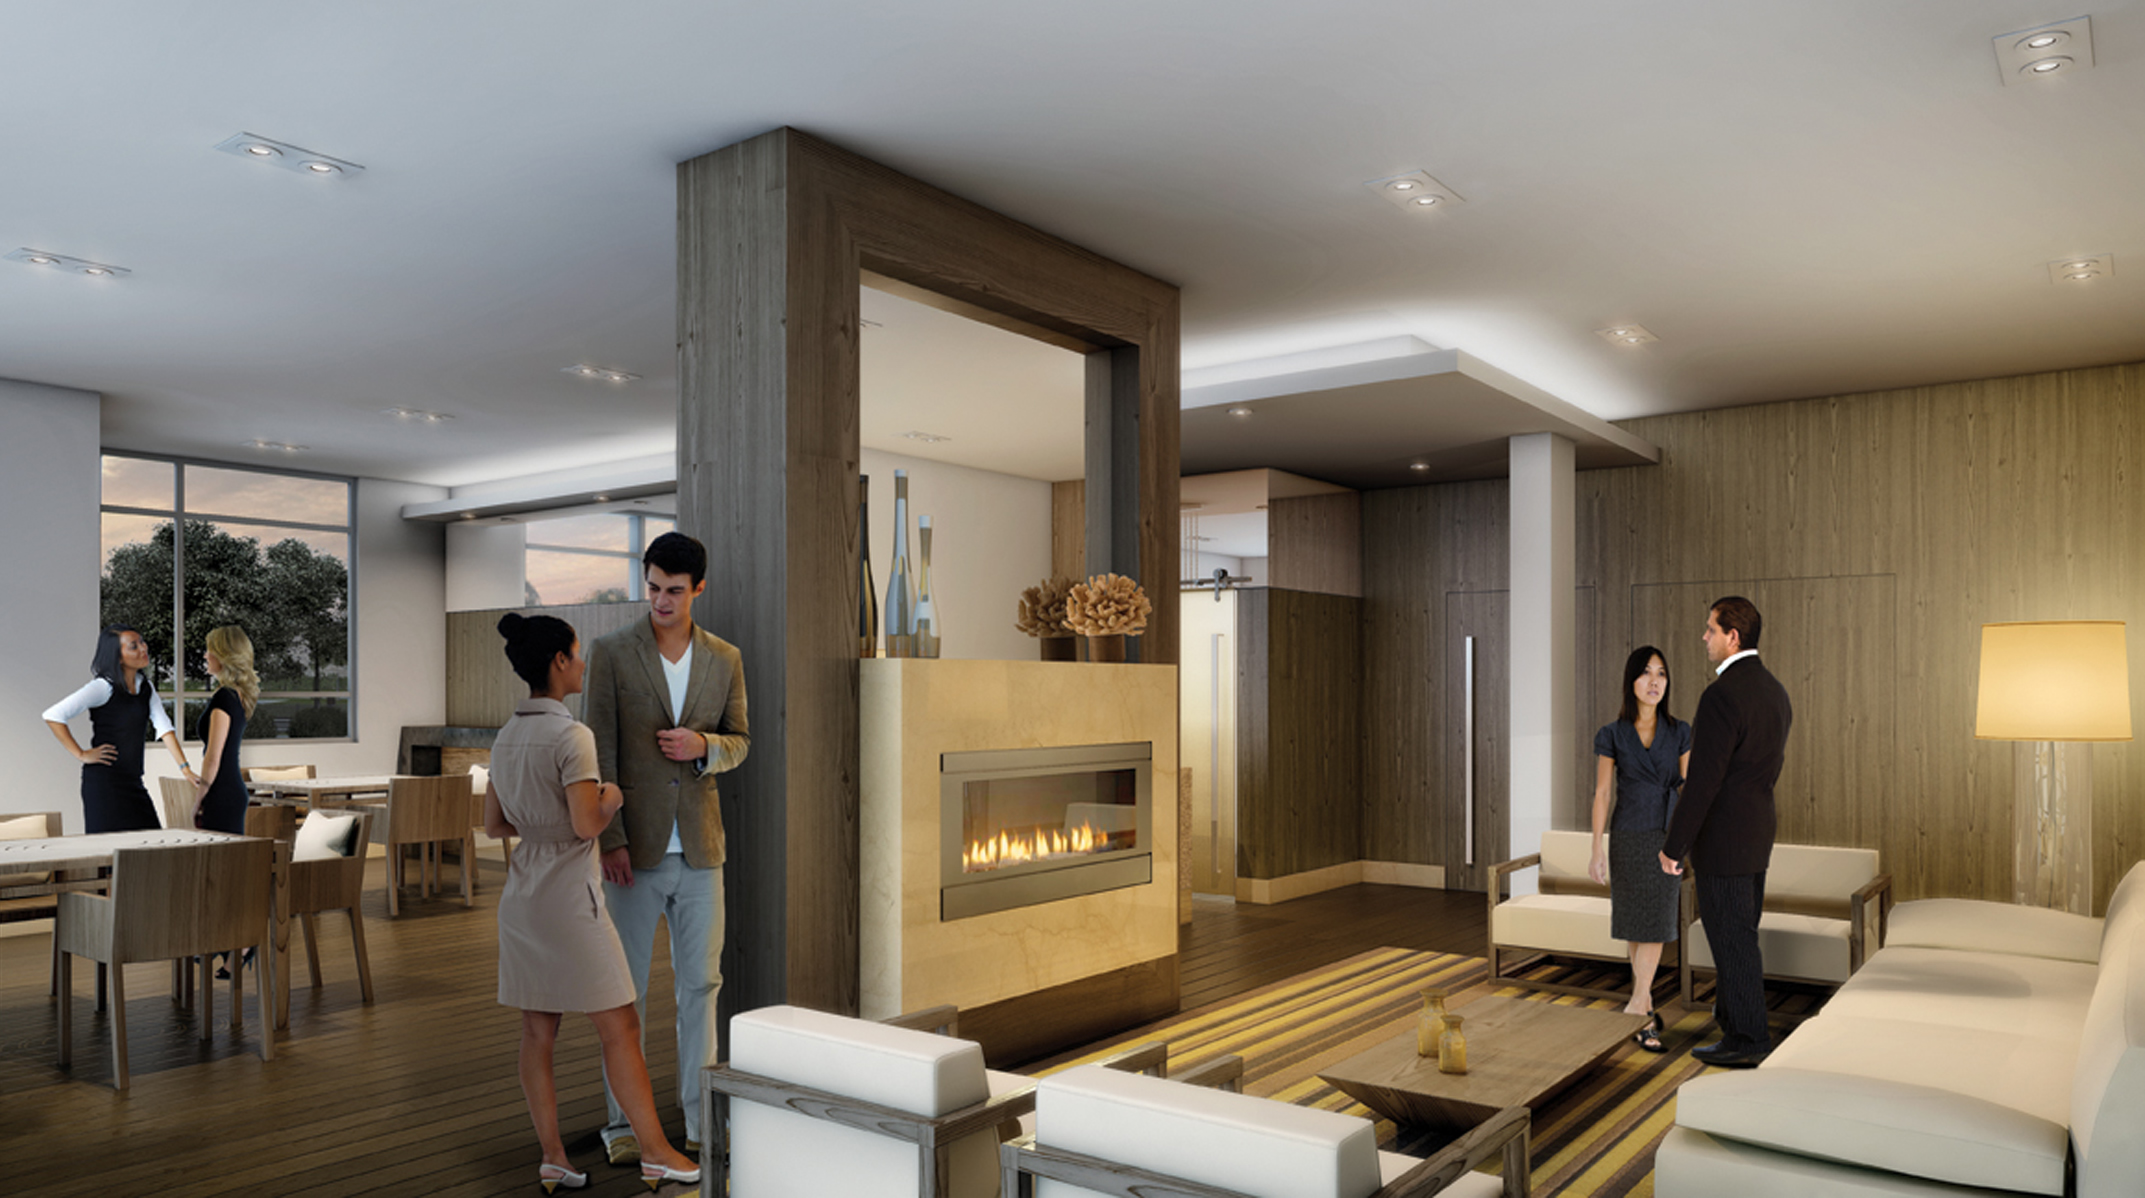 NIGHTLIFE IN YOUR OWN HOME   IN THE CONDO KNOW